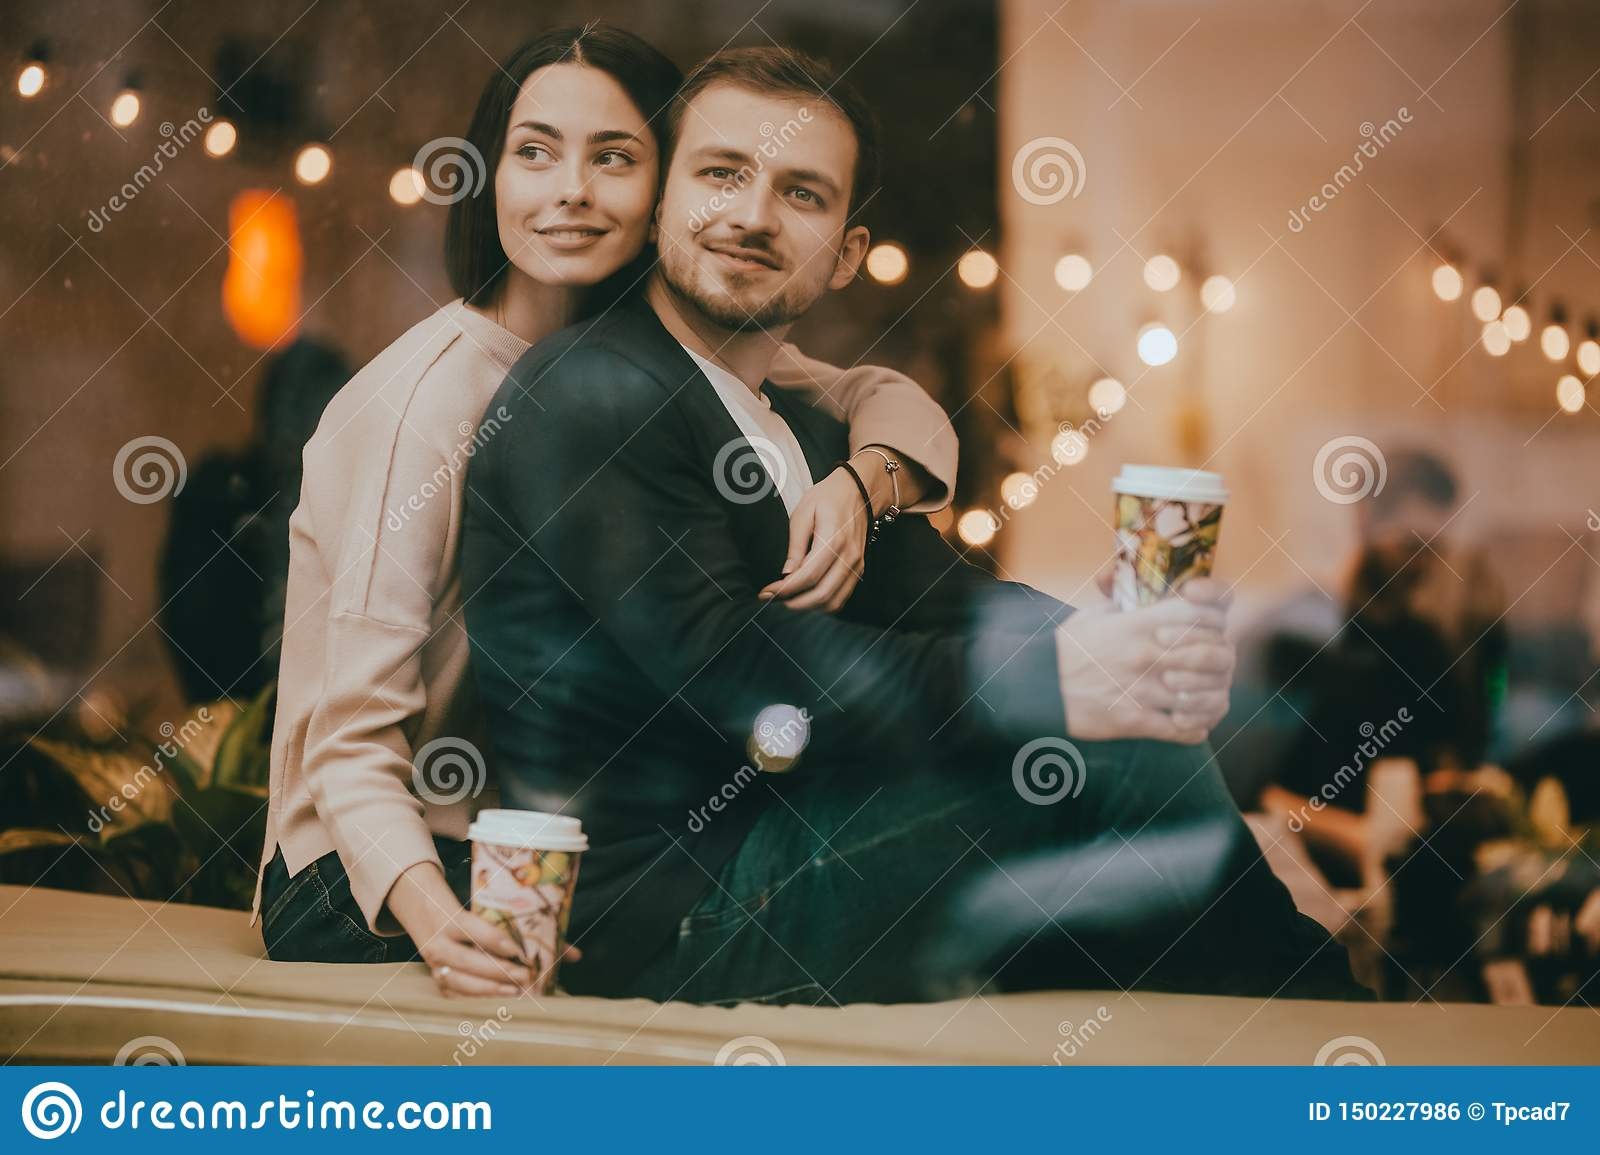 Loving guy and girl sit hugging on the windowsill in a romantic cafe